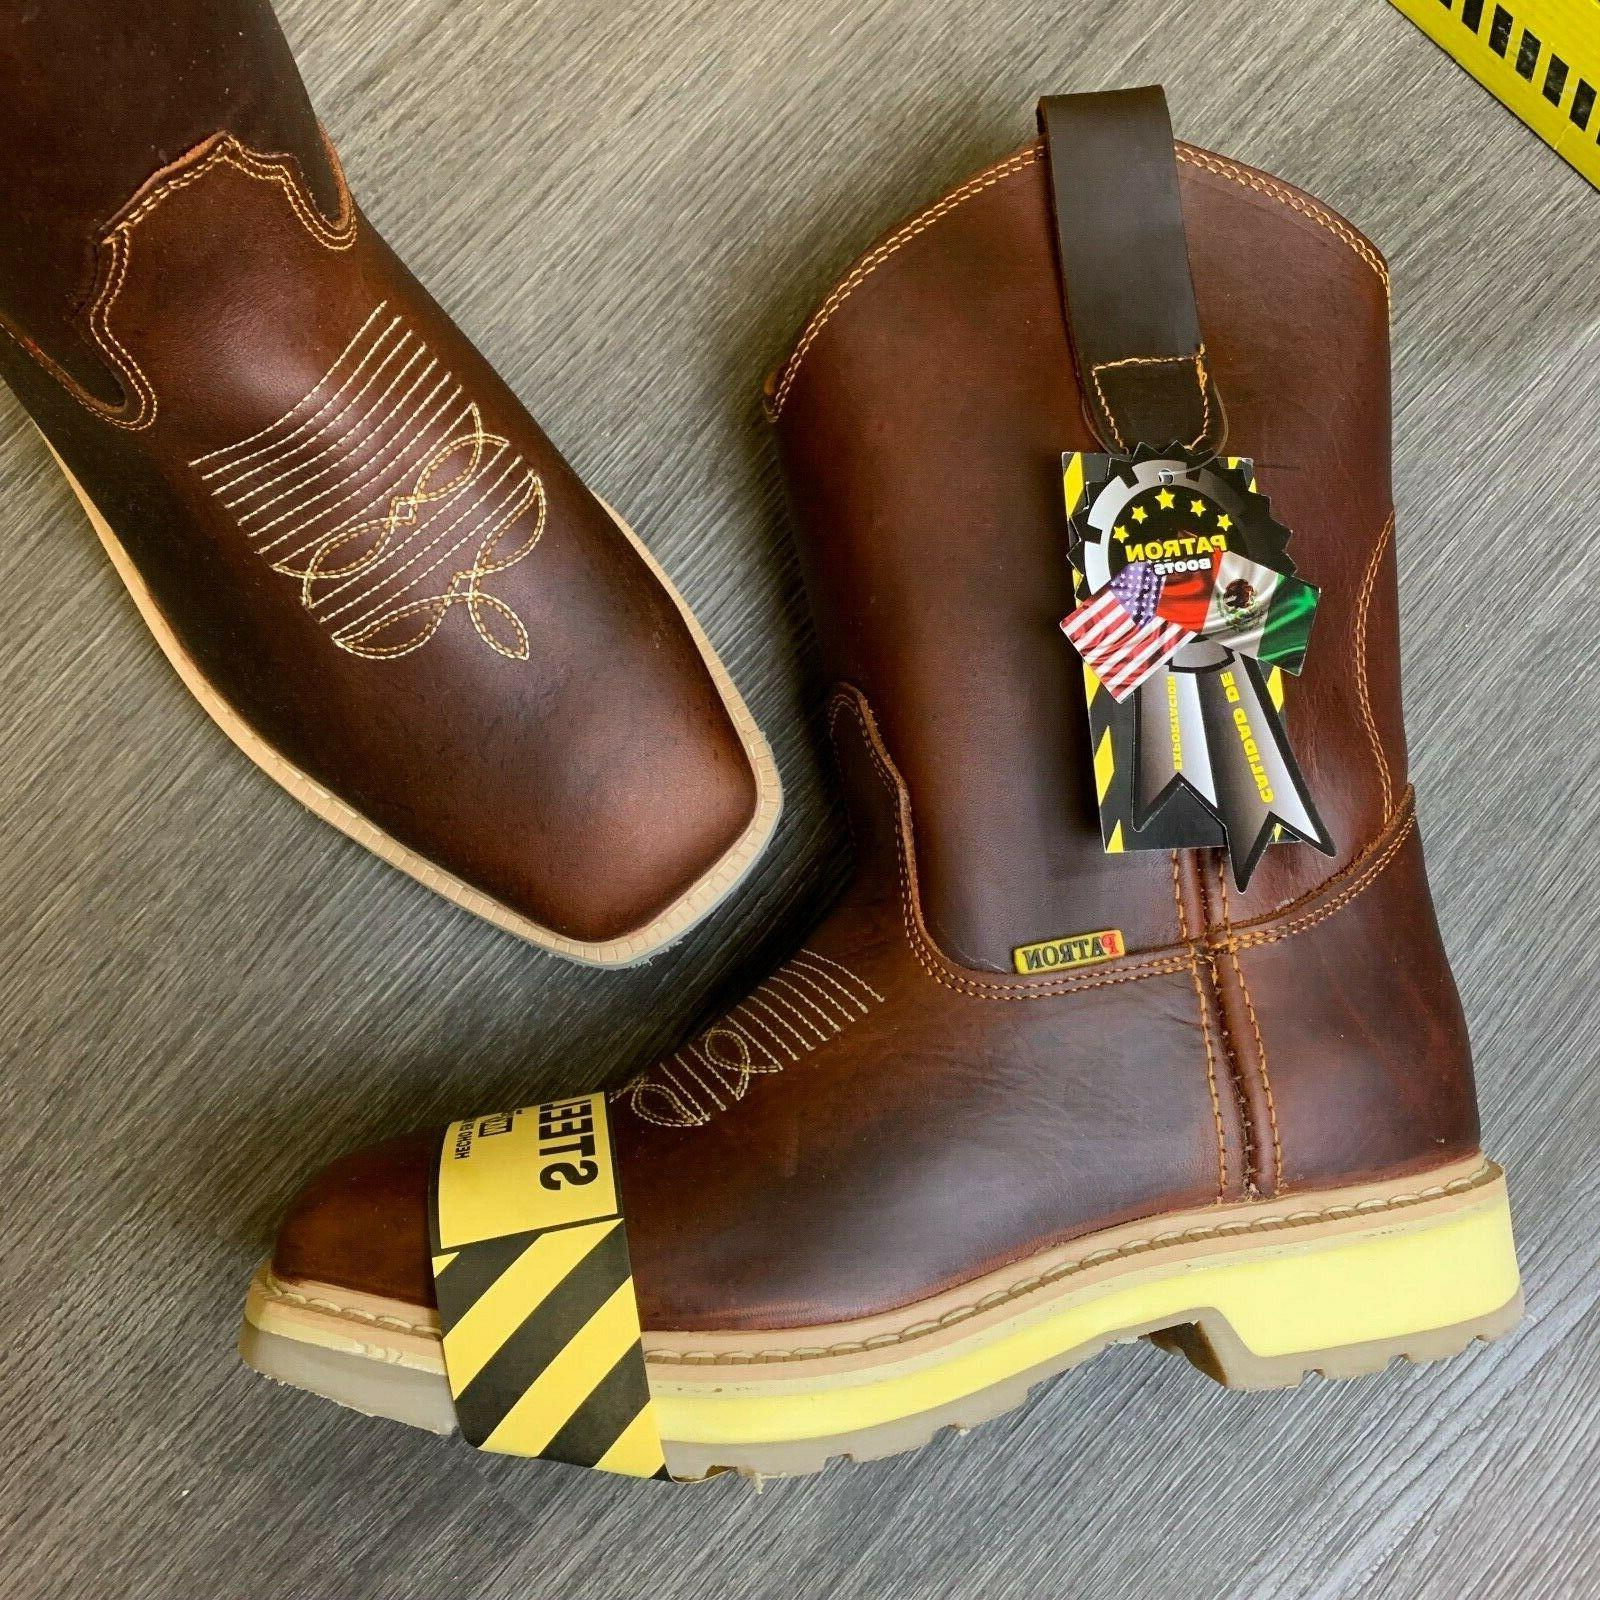 MEN'S STEEL TOE WORK BOOTS GENUINE WESTERN COWBOY PULL ON BOOTS